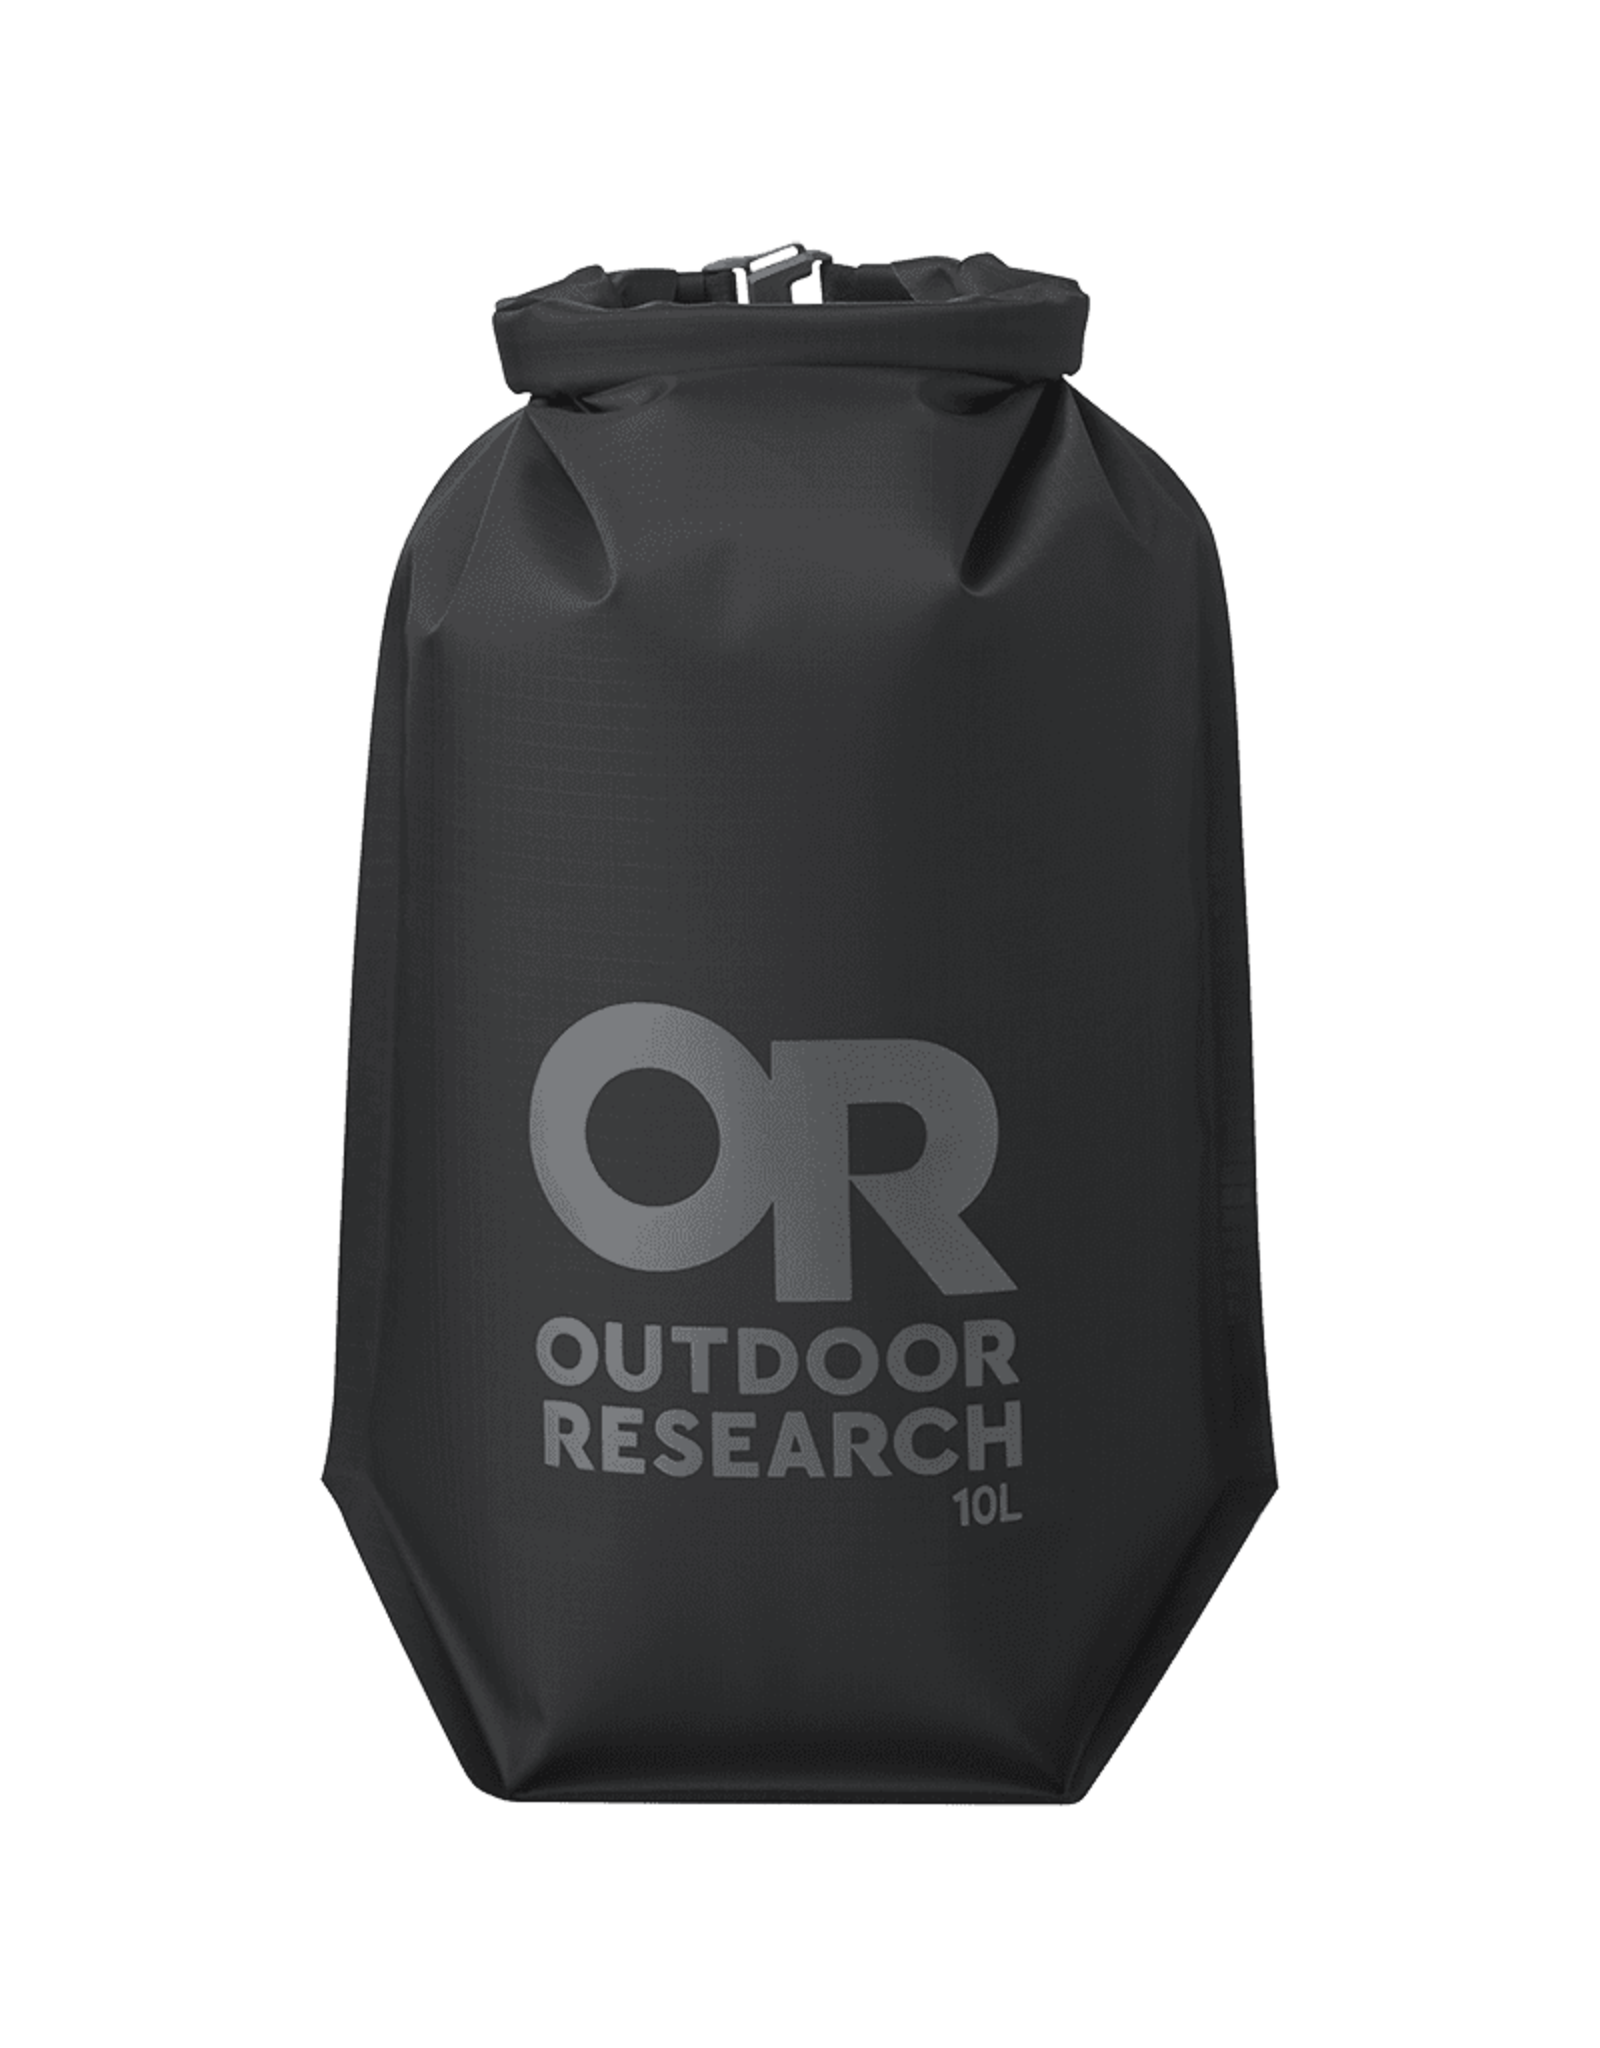 OUTDOOR RESEARCH CarryOut Dry Bag 10L black O/S